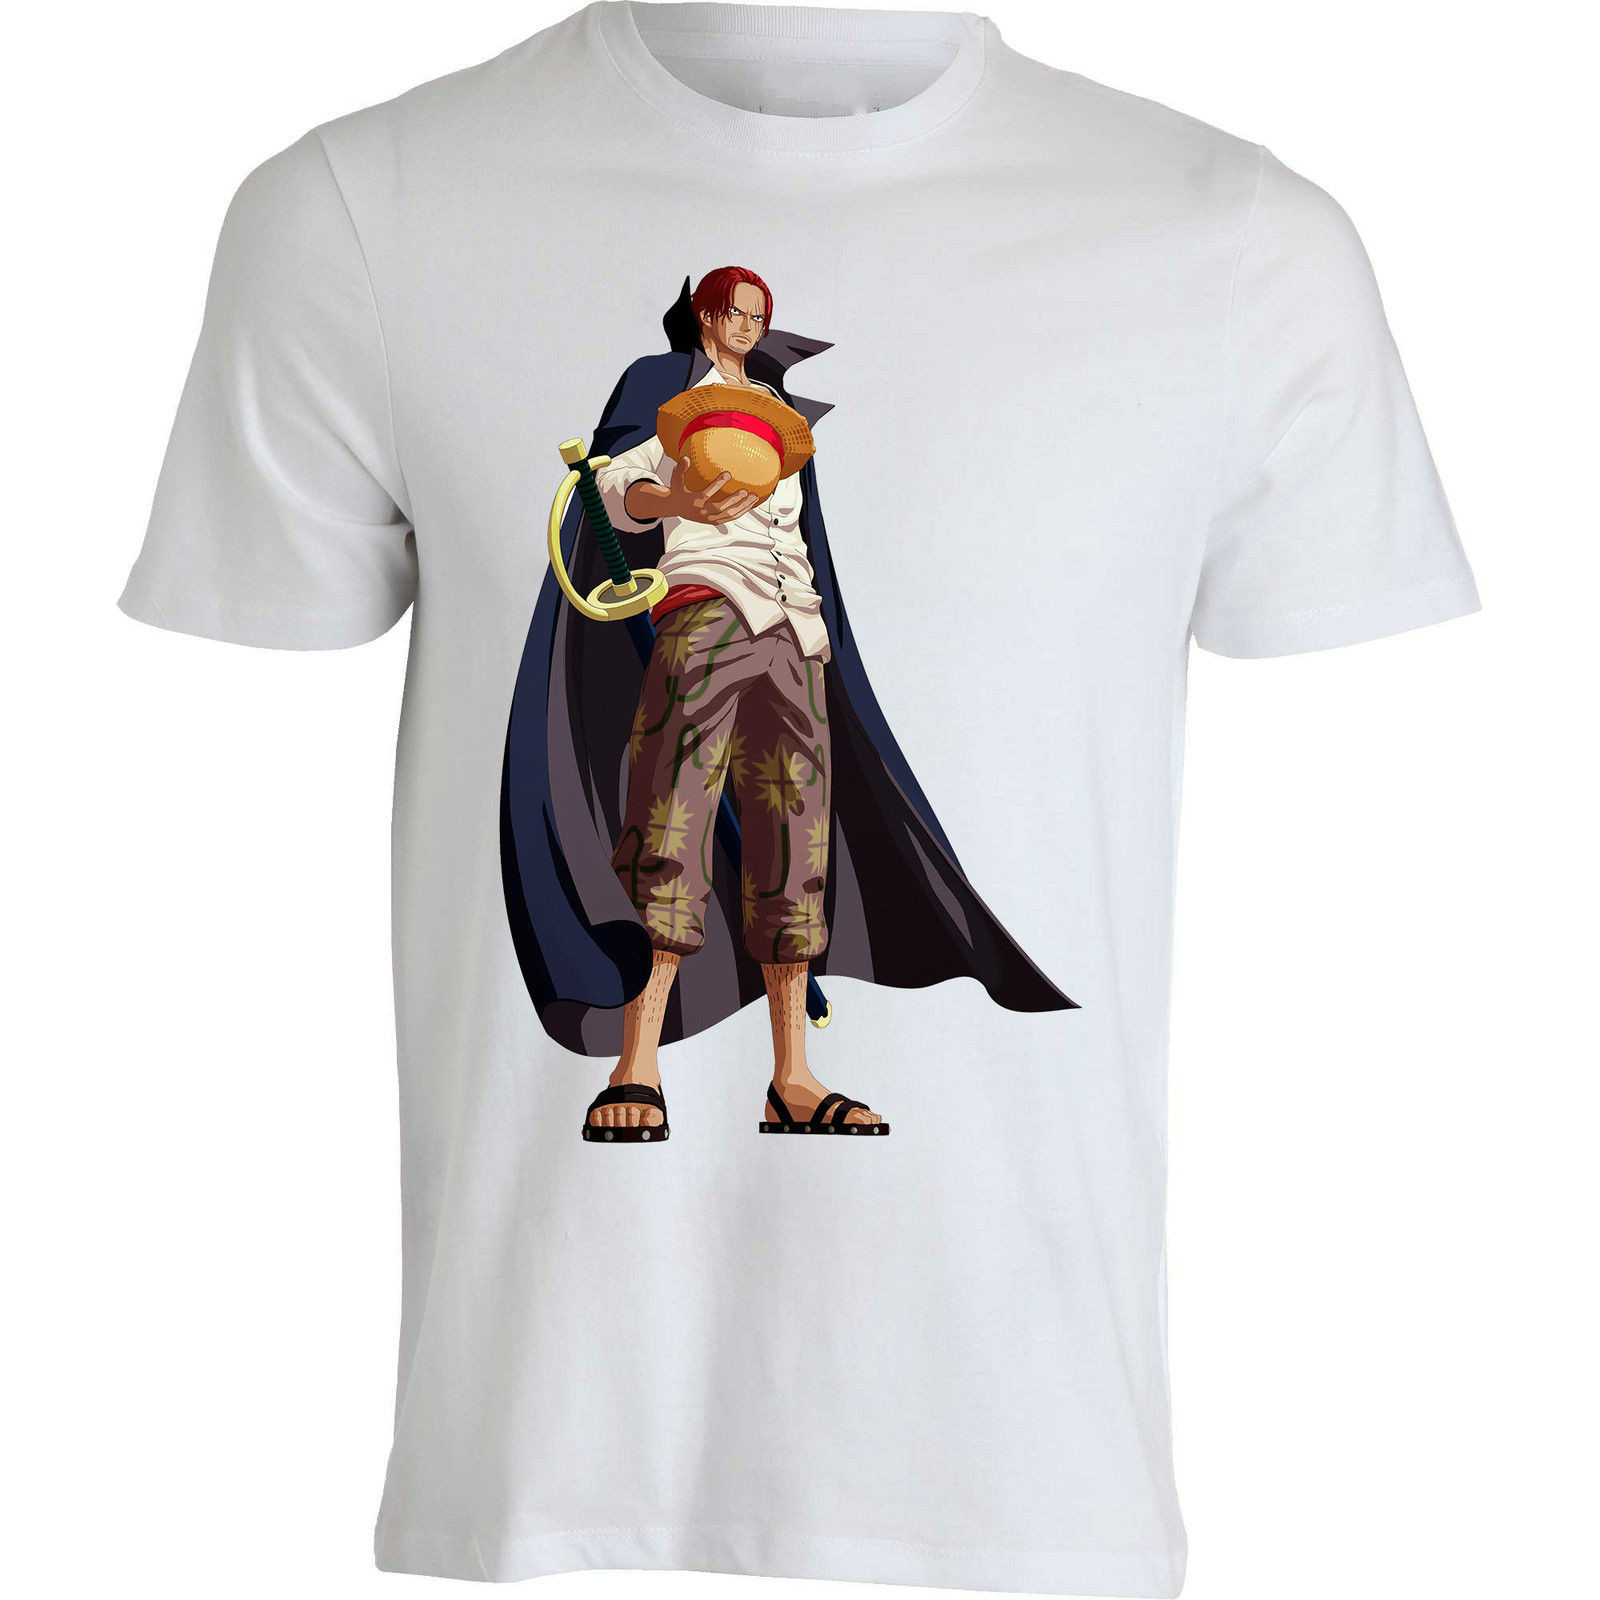 Red hair Shanks One Piece Younkou anime Japan funny men clothing top t shirt On Sale New Fashion Summer Men Tops Tees